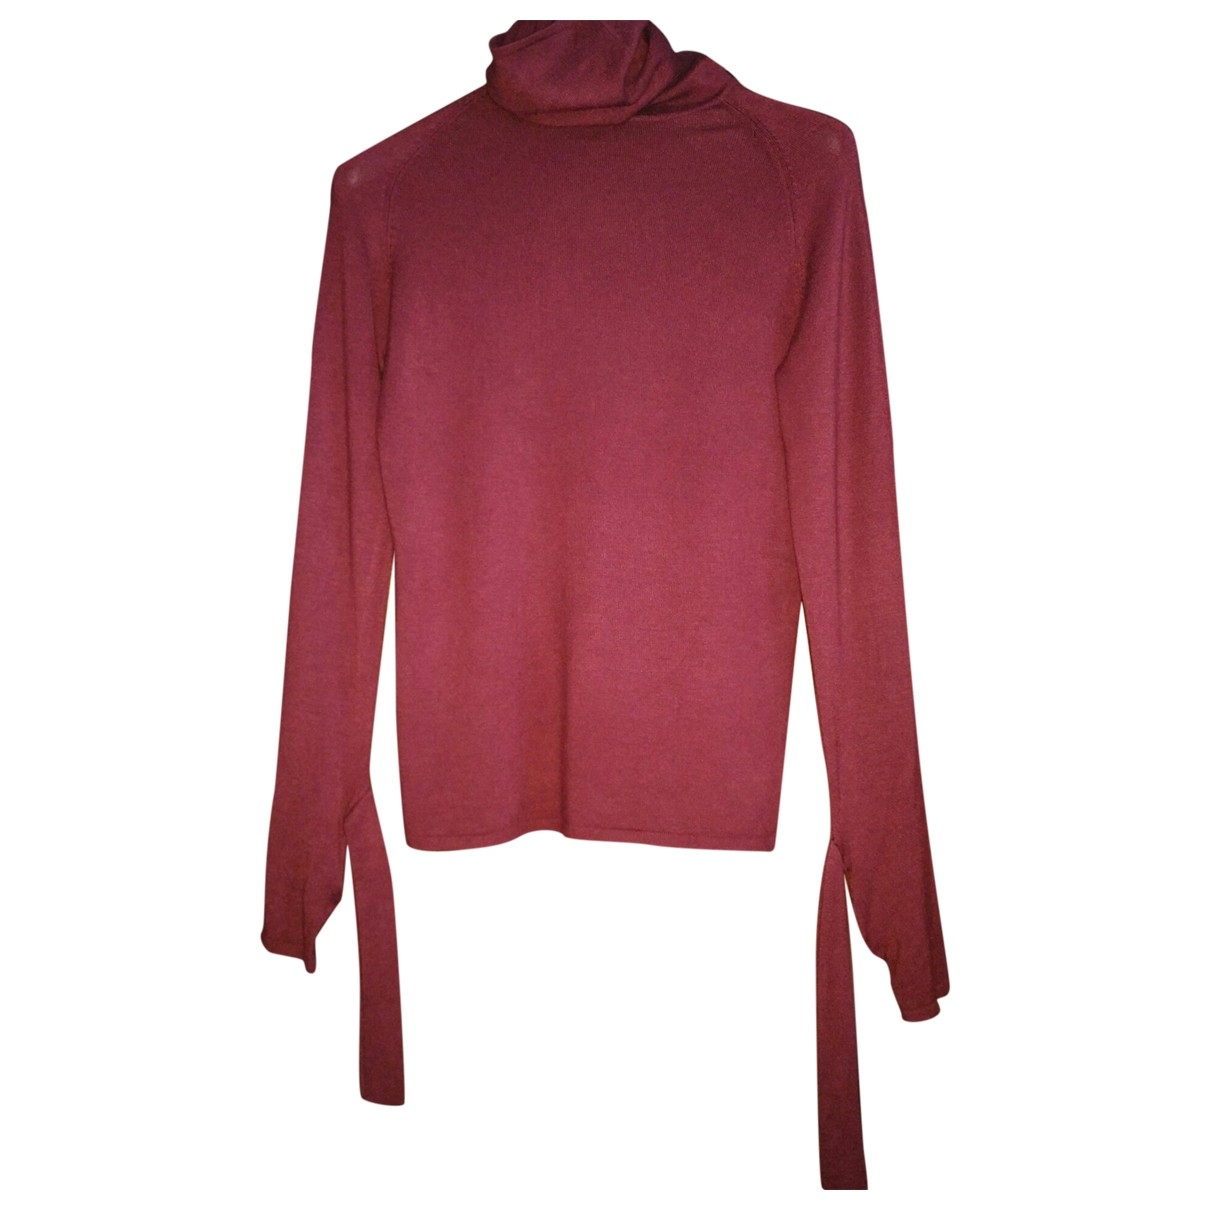 Non Signé / Unsigned \N Burgundy Cotton Knitwear for Women S International